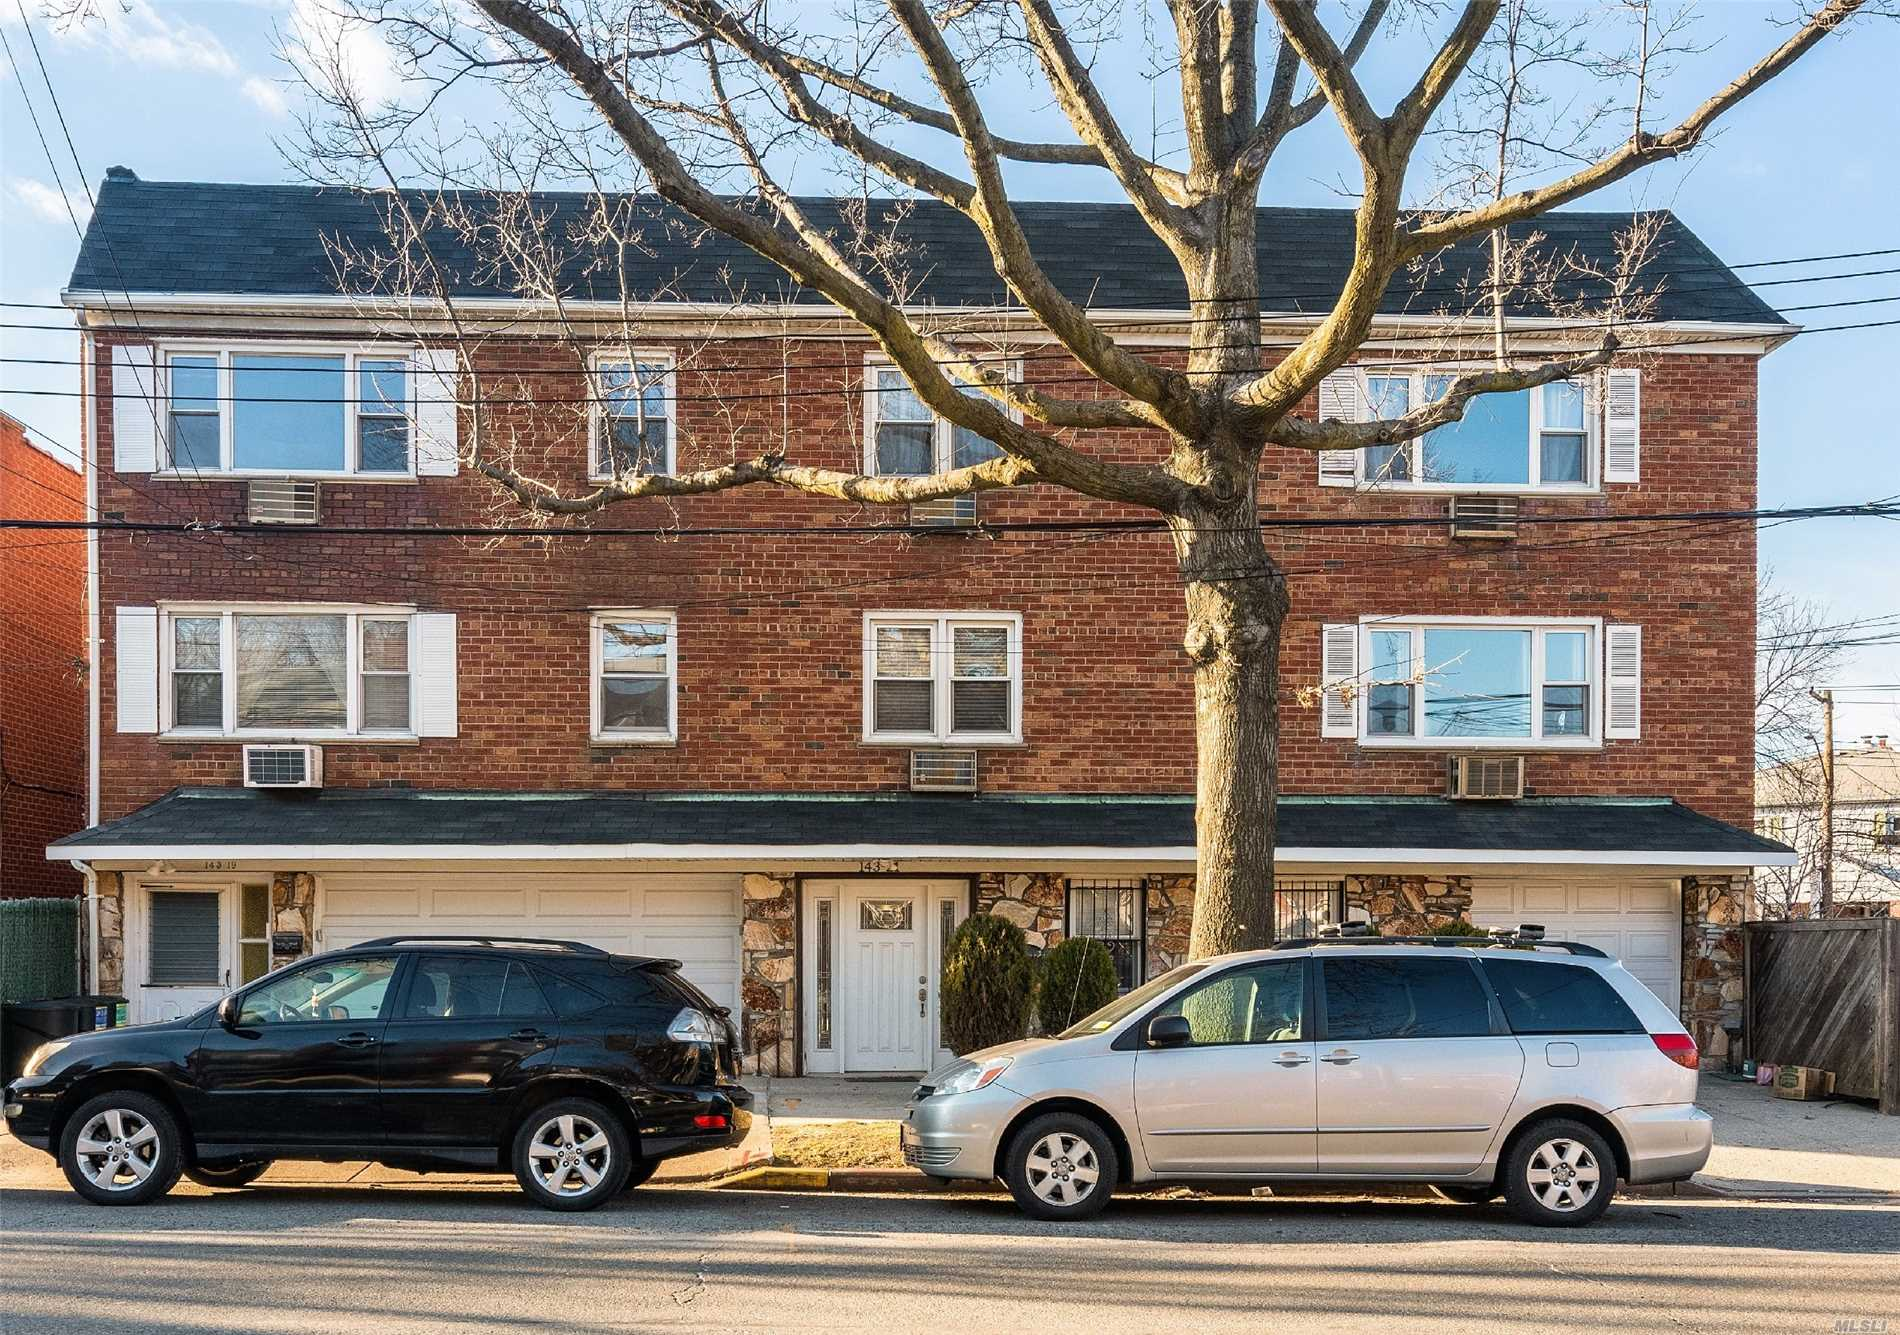 Beautiful brick legal two family situated in the border line of Flushing and Whitestone. above ground 3 levels plus finished basement with separate entrance to the back yard. Mint condition, 1st and 3rd floor already vacant, move in condition. conveniently located next to bus stop, school, supermarket! few minutes to downtown flushing. The frontage of this property is on union st and 25th ave.